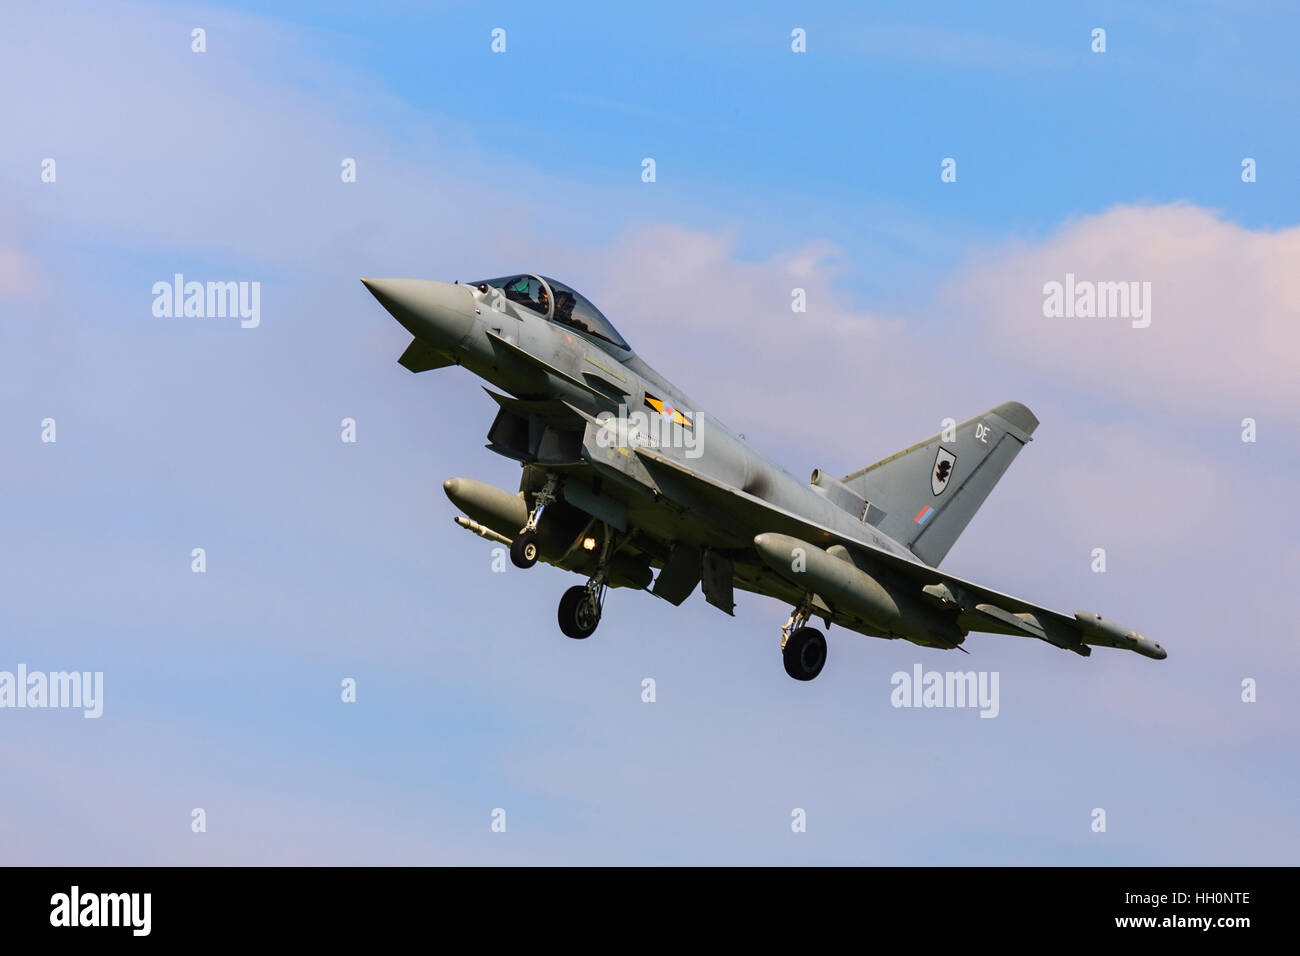 Eurofighter Typhoon FGR4 ZK305 DE XI (F) Squadron on final approach to land at RAF Conningsby - Stock Image